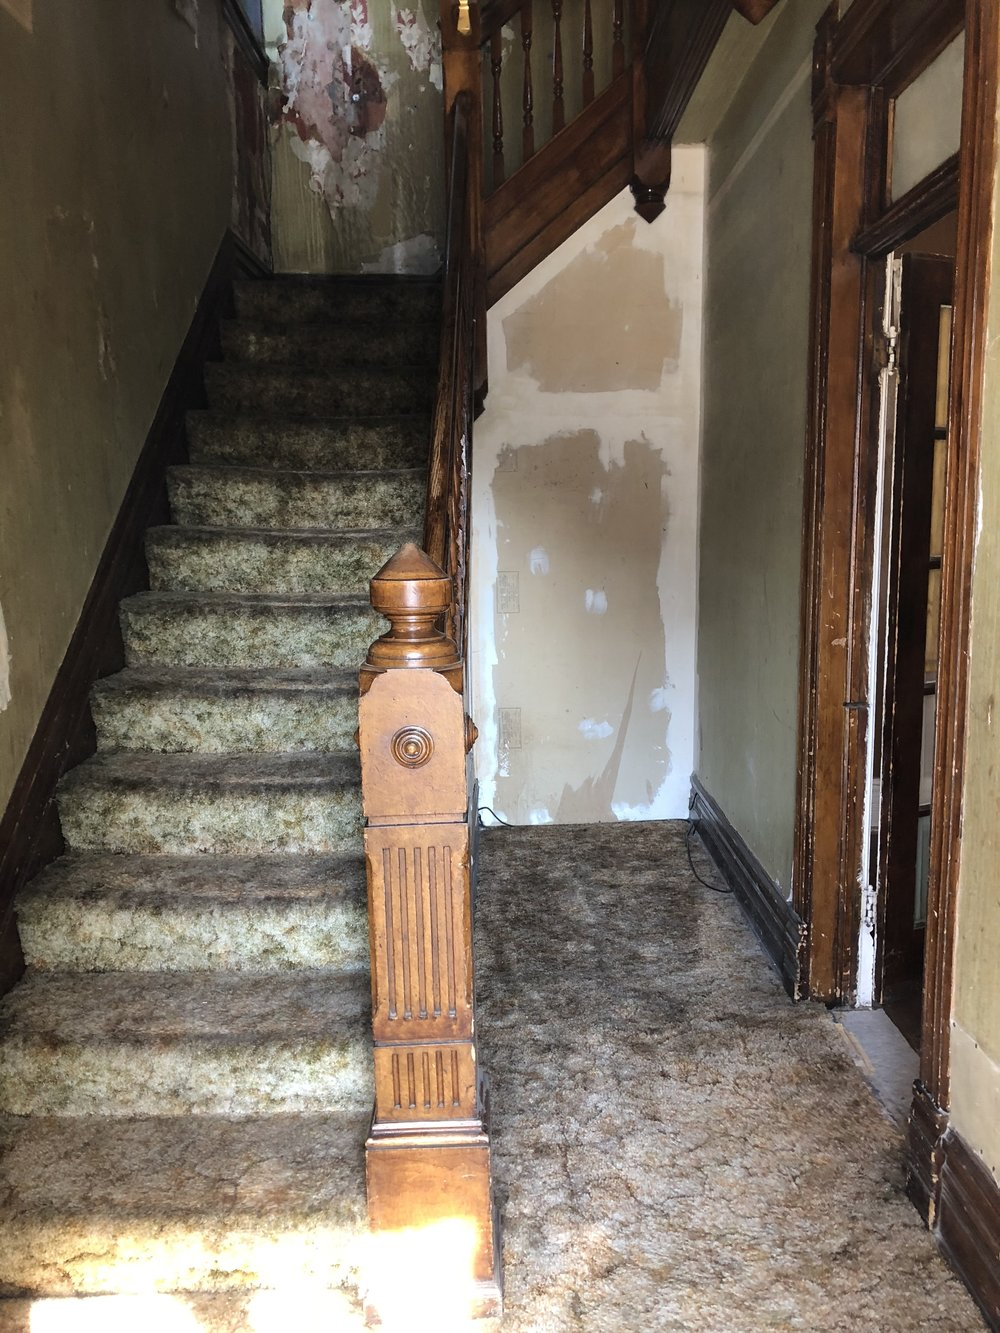 Entry way prior to demolition.